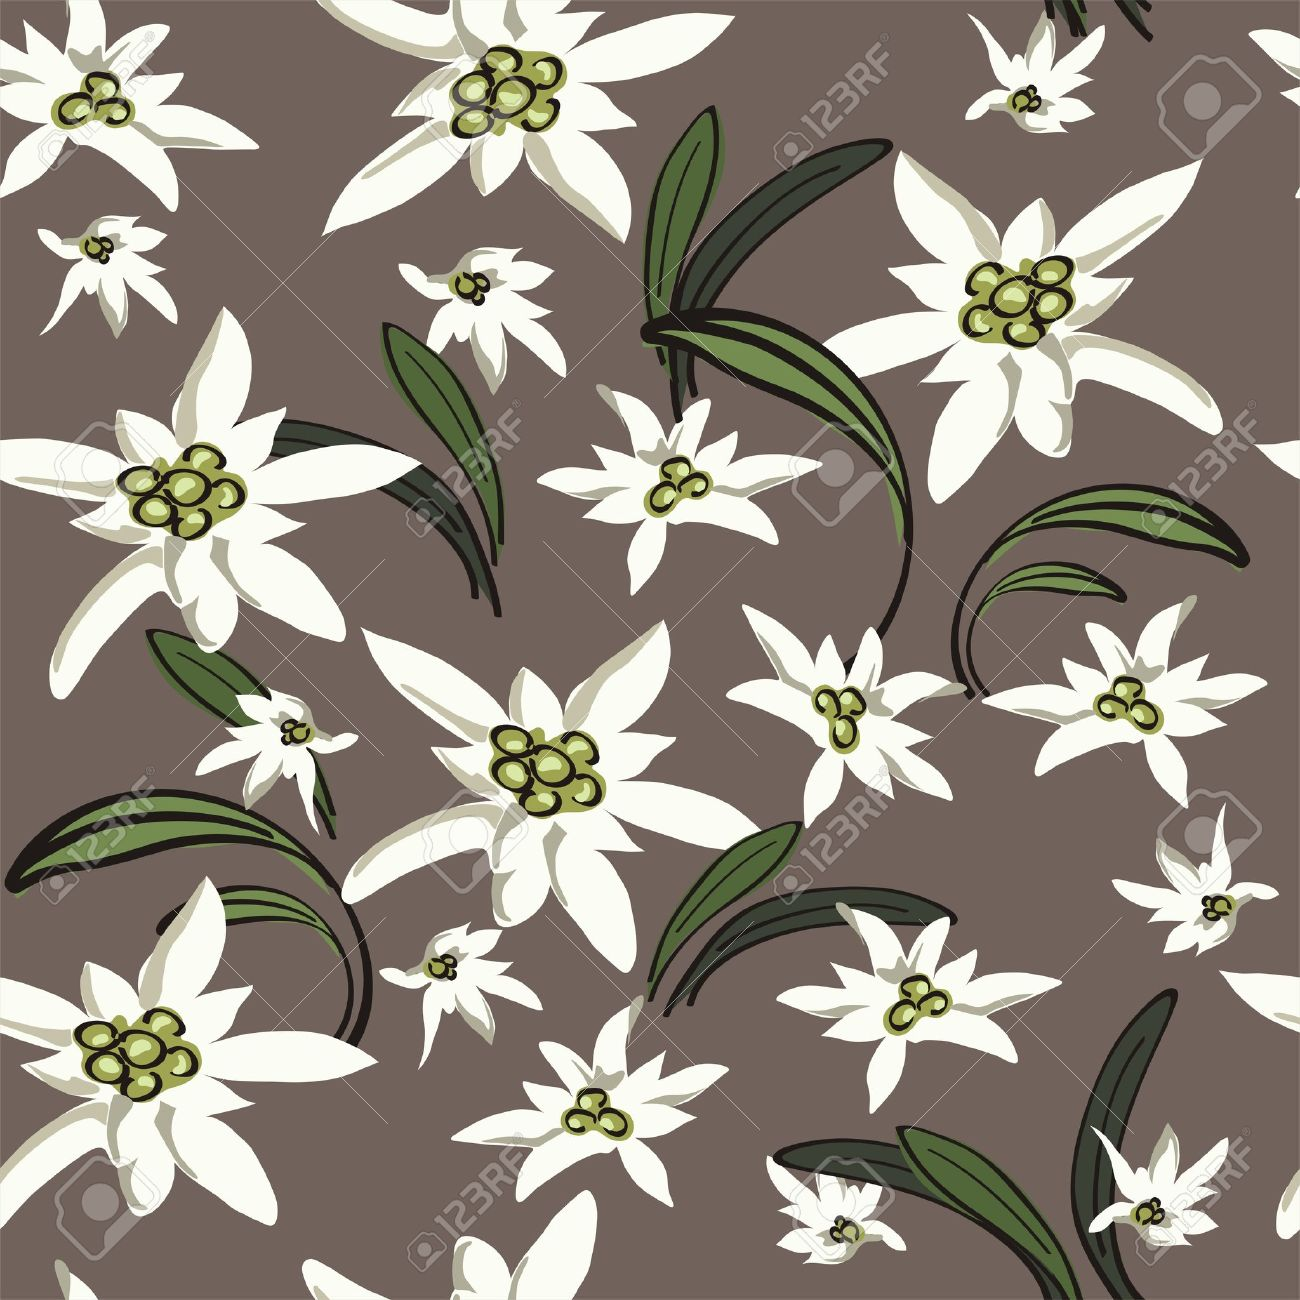 1300x1300 Elegance Seamless Background With Edelweiss Flowers Floral Vector